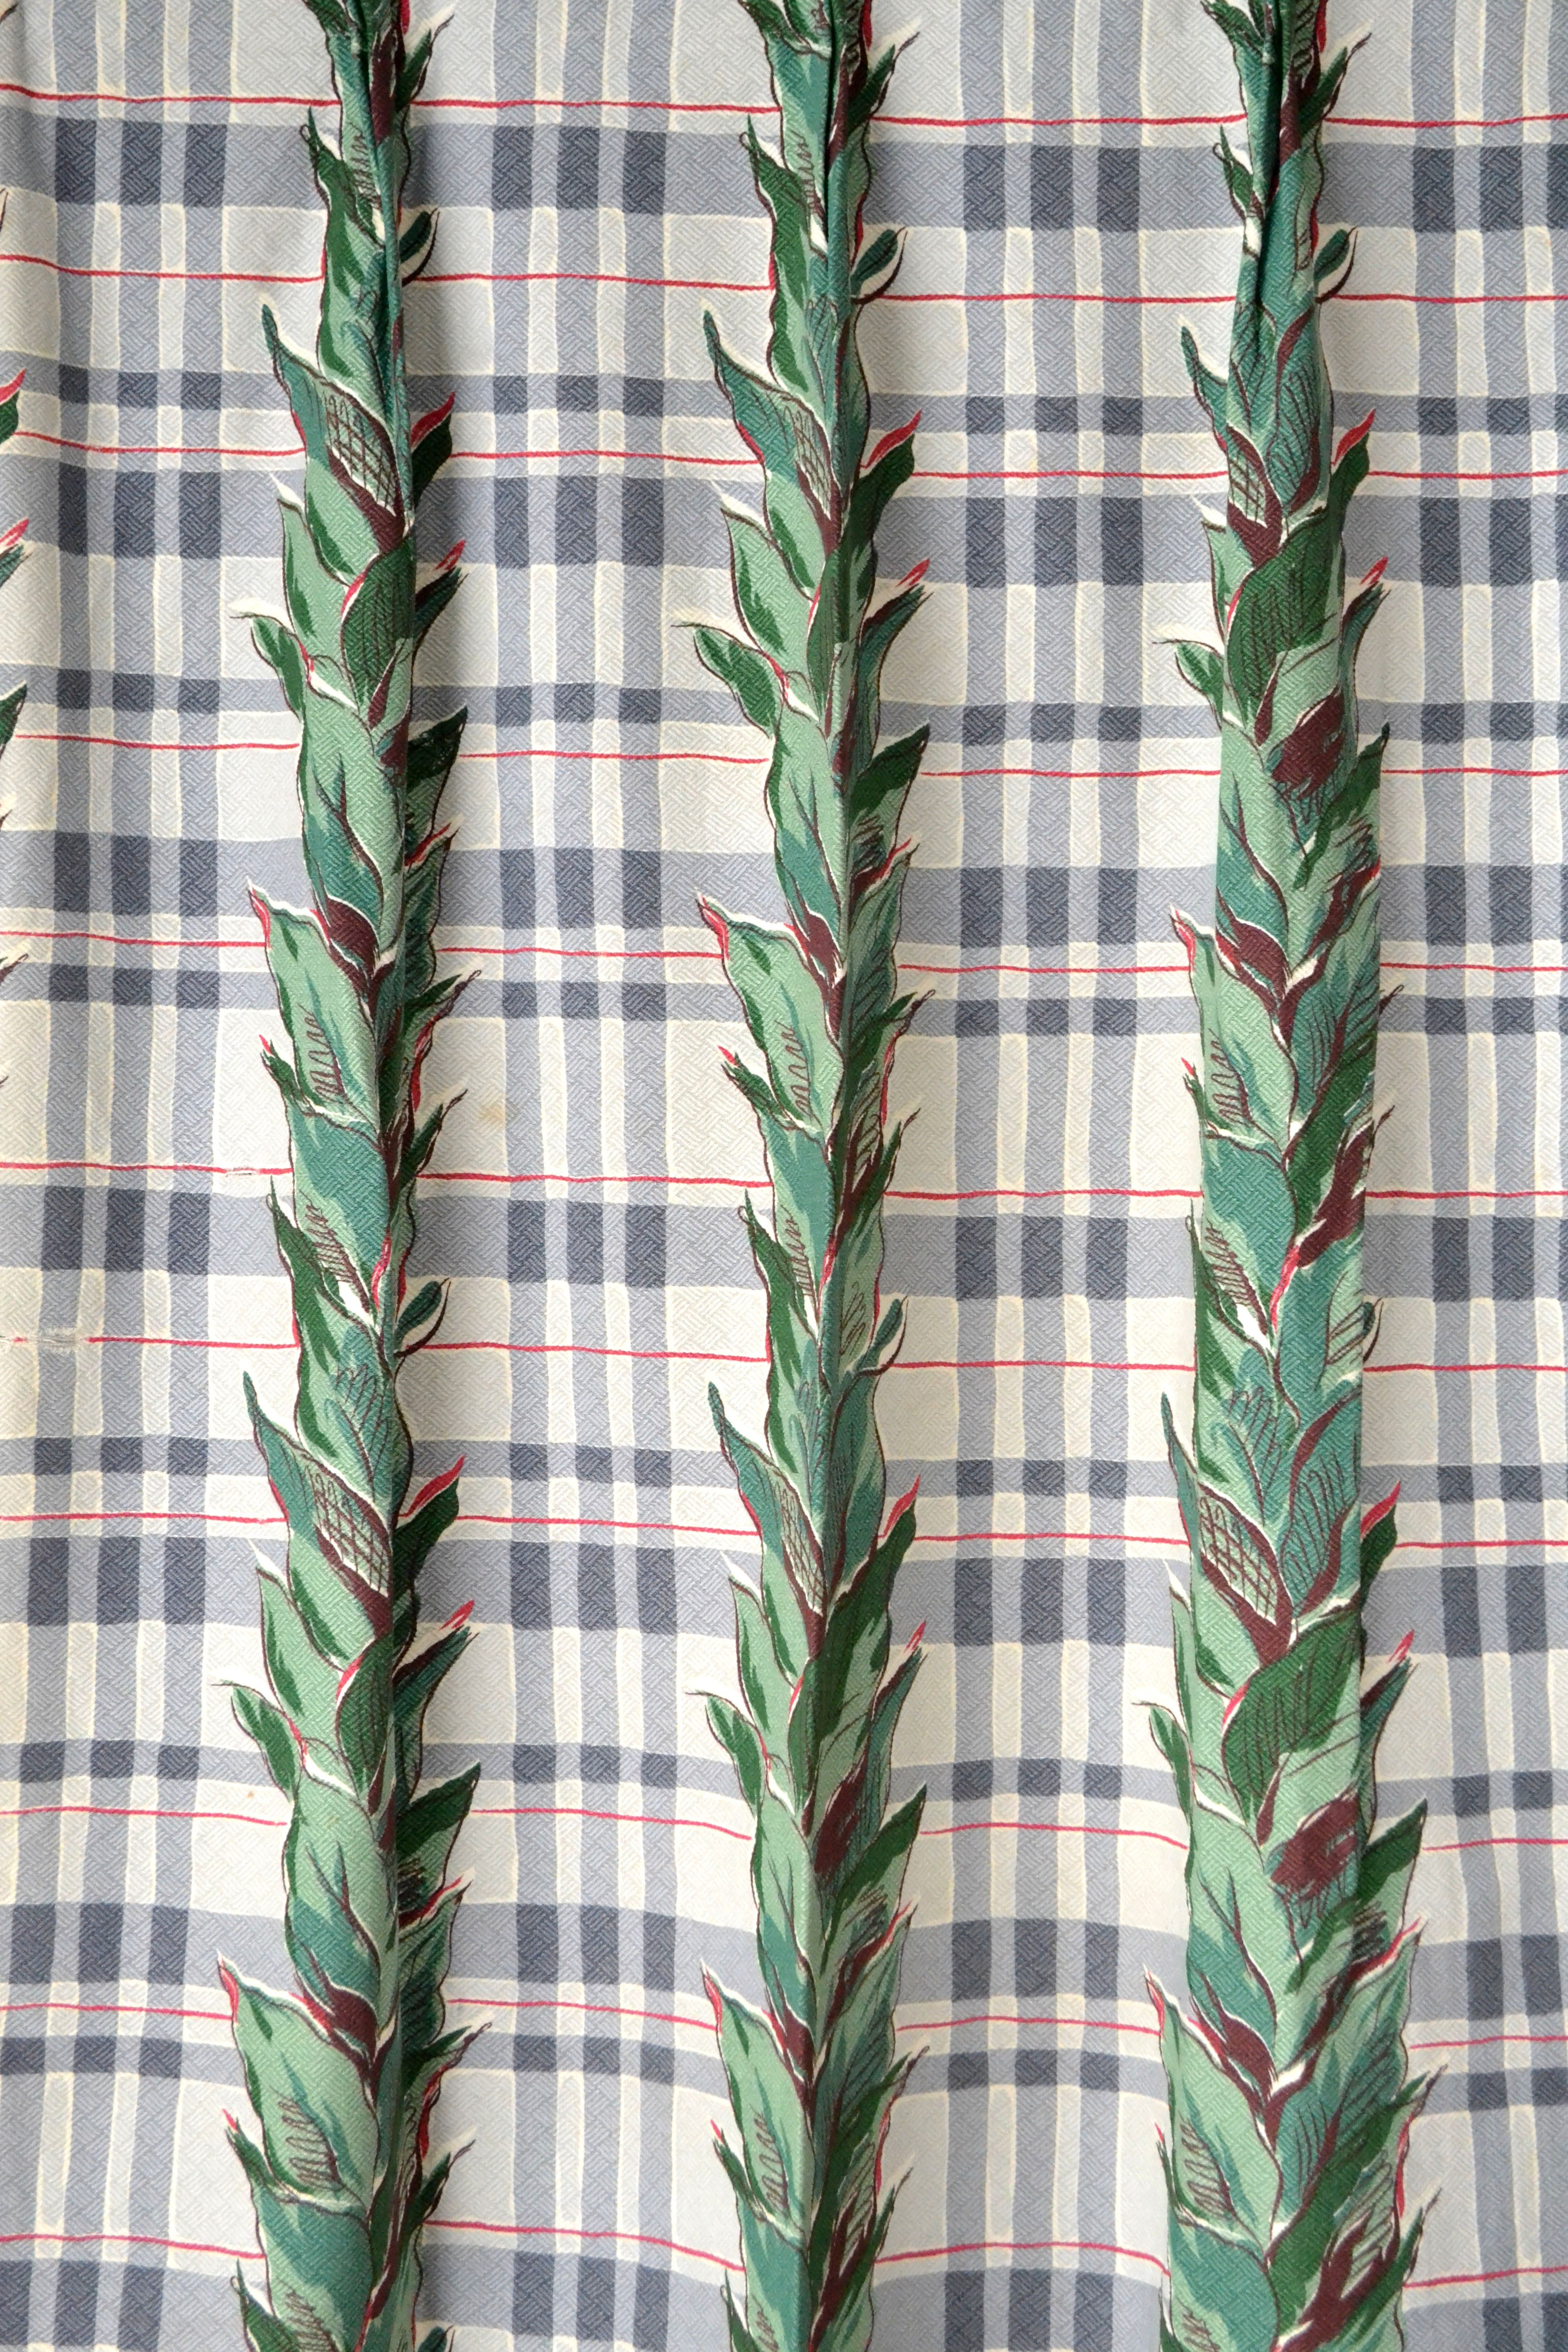 Vintage 1940s Plaid and Vines Barkcloth Curtains by Yuba Mercantile